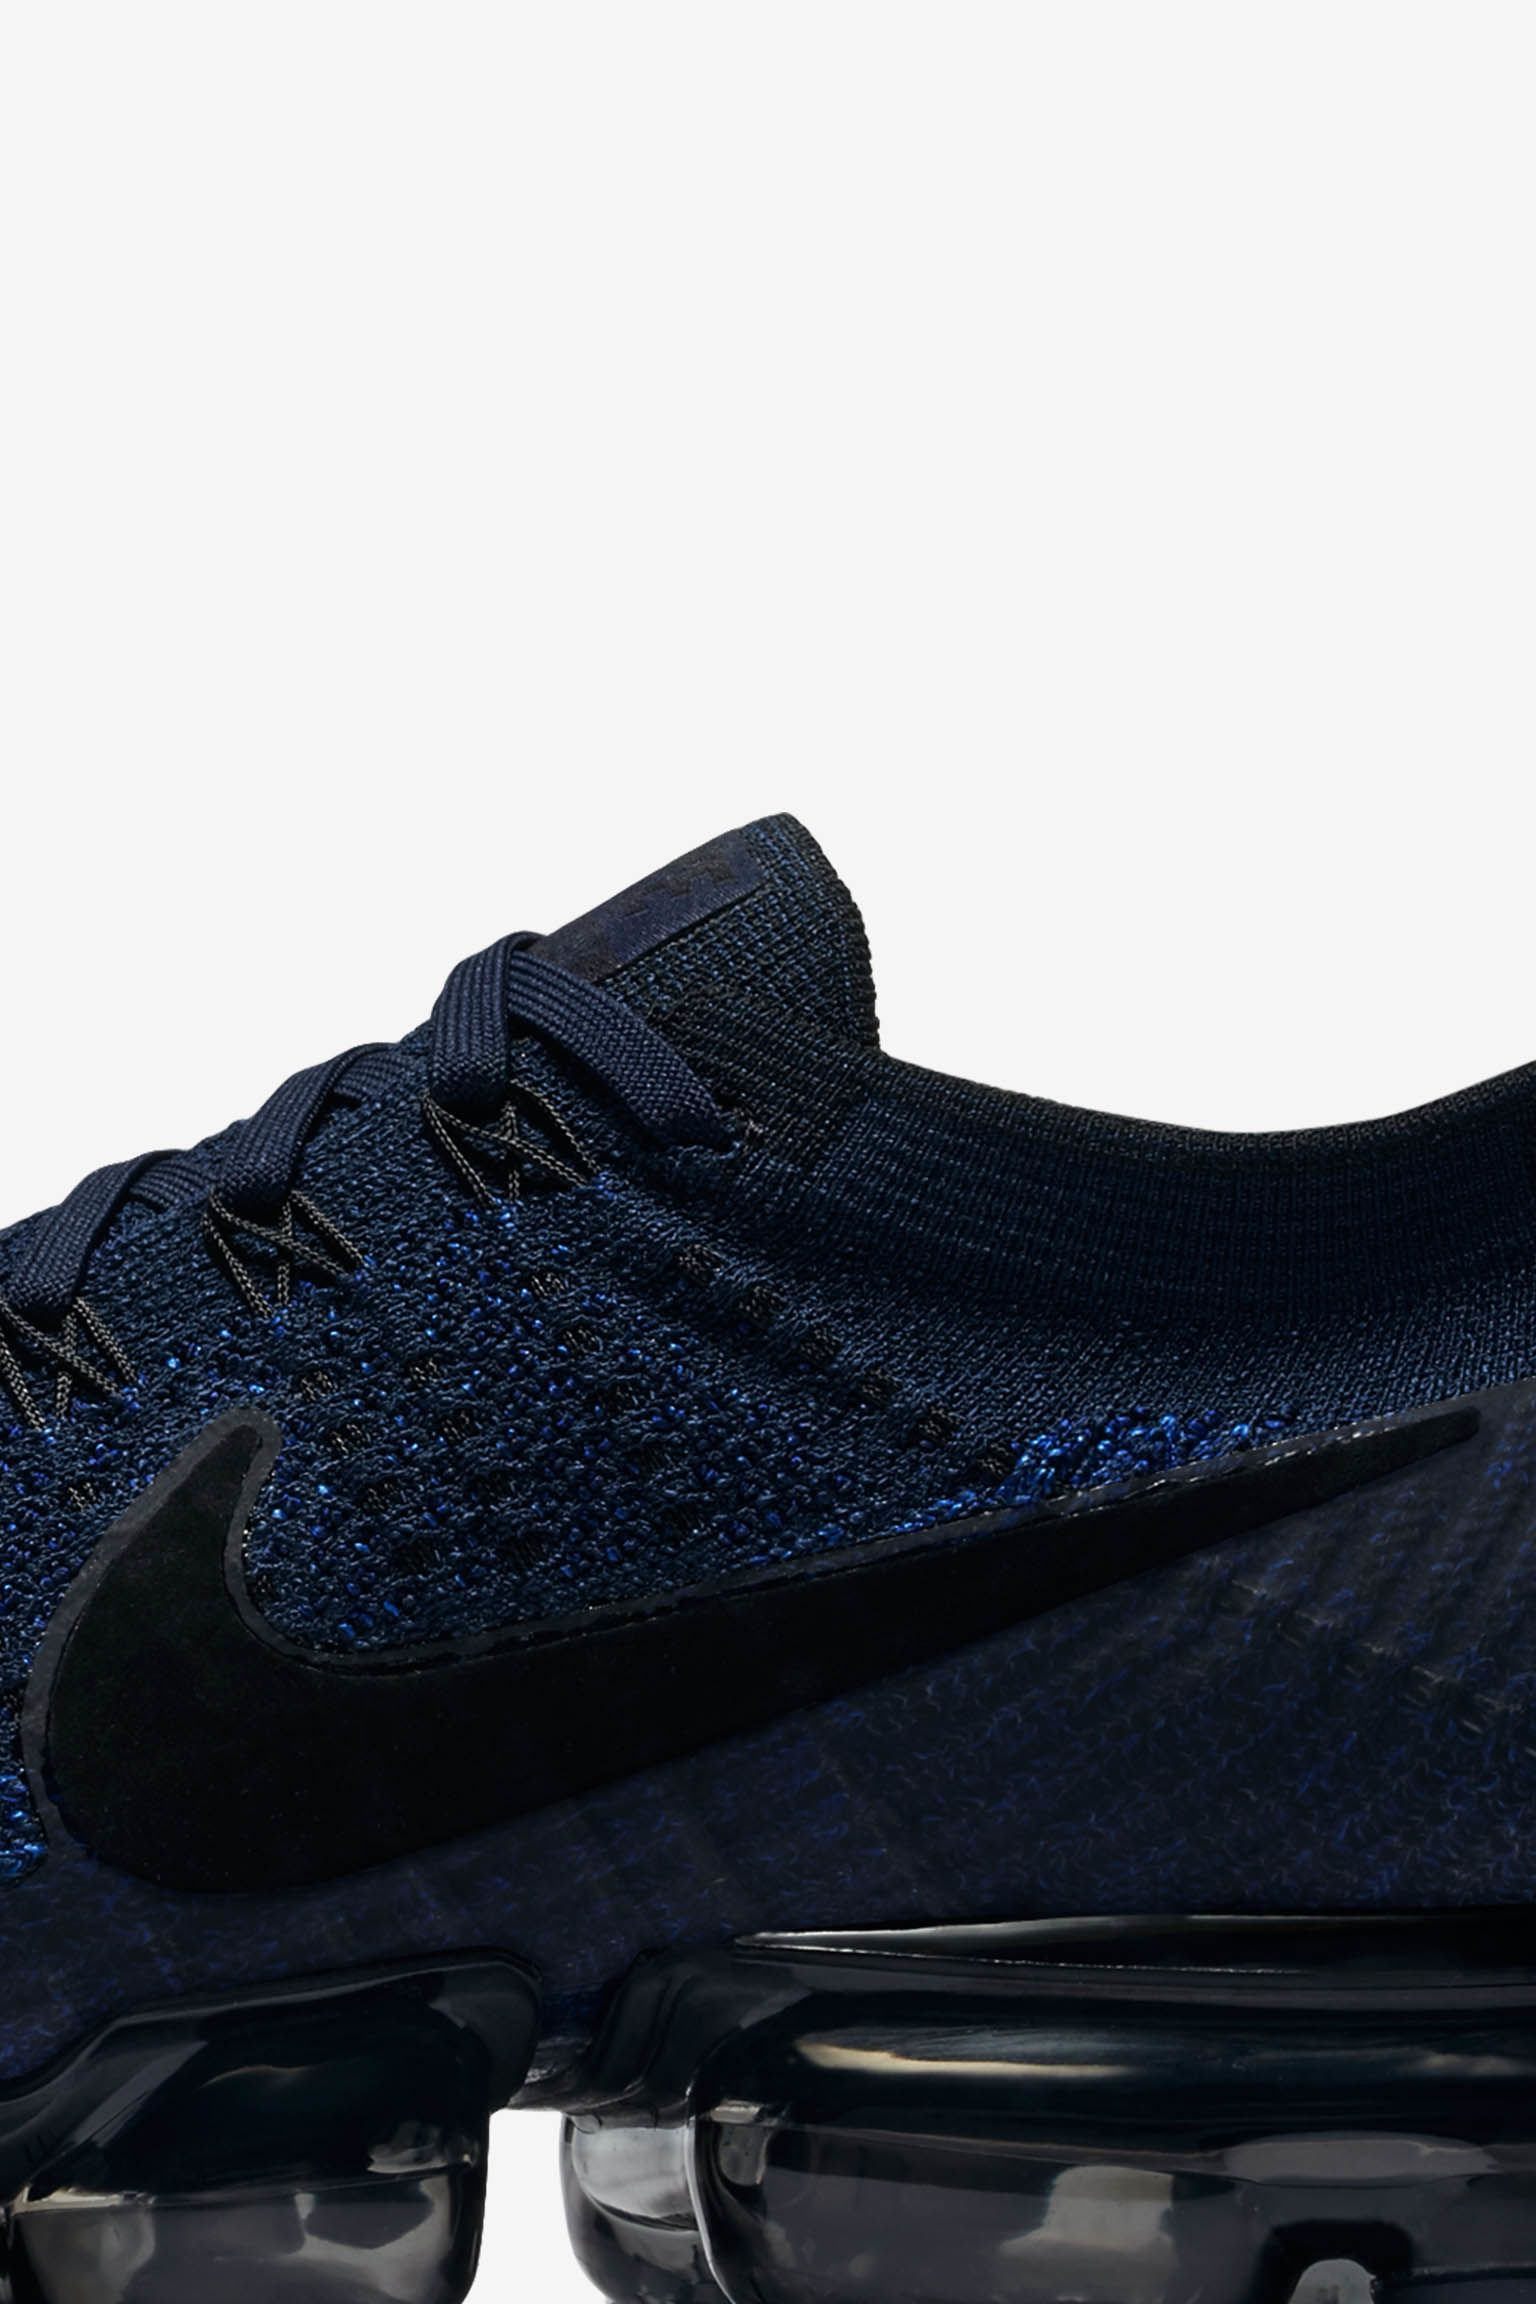 Nike Air VaporMax Flyknit Day to Night 'College Navy'